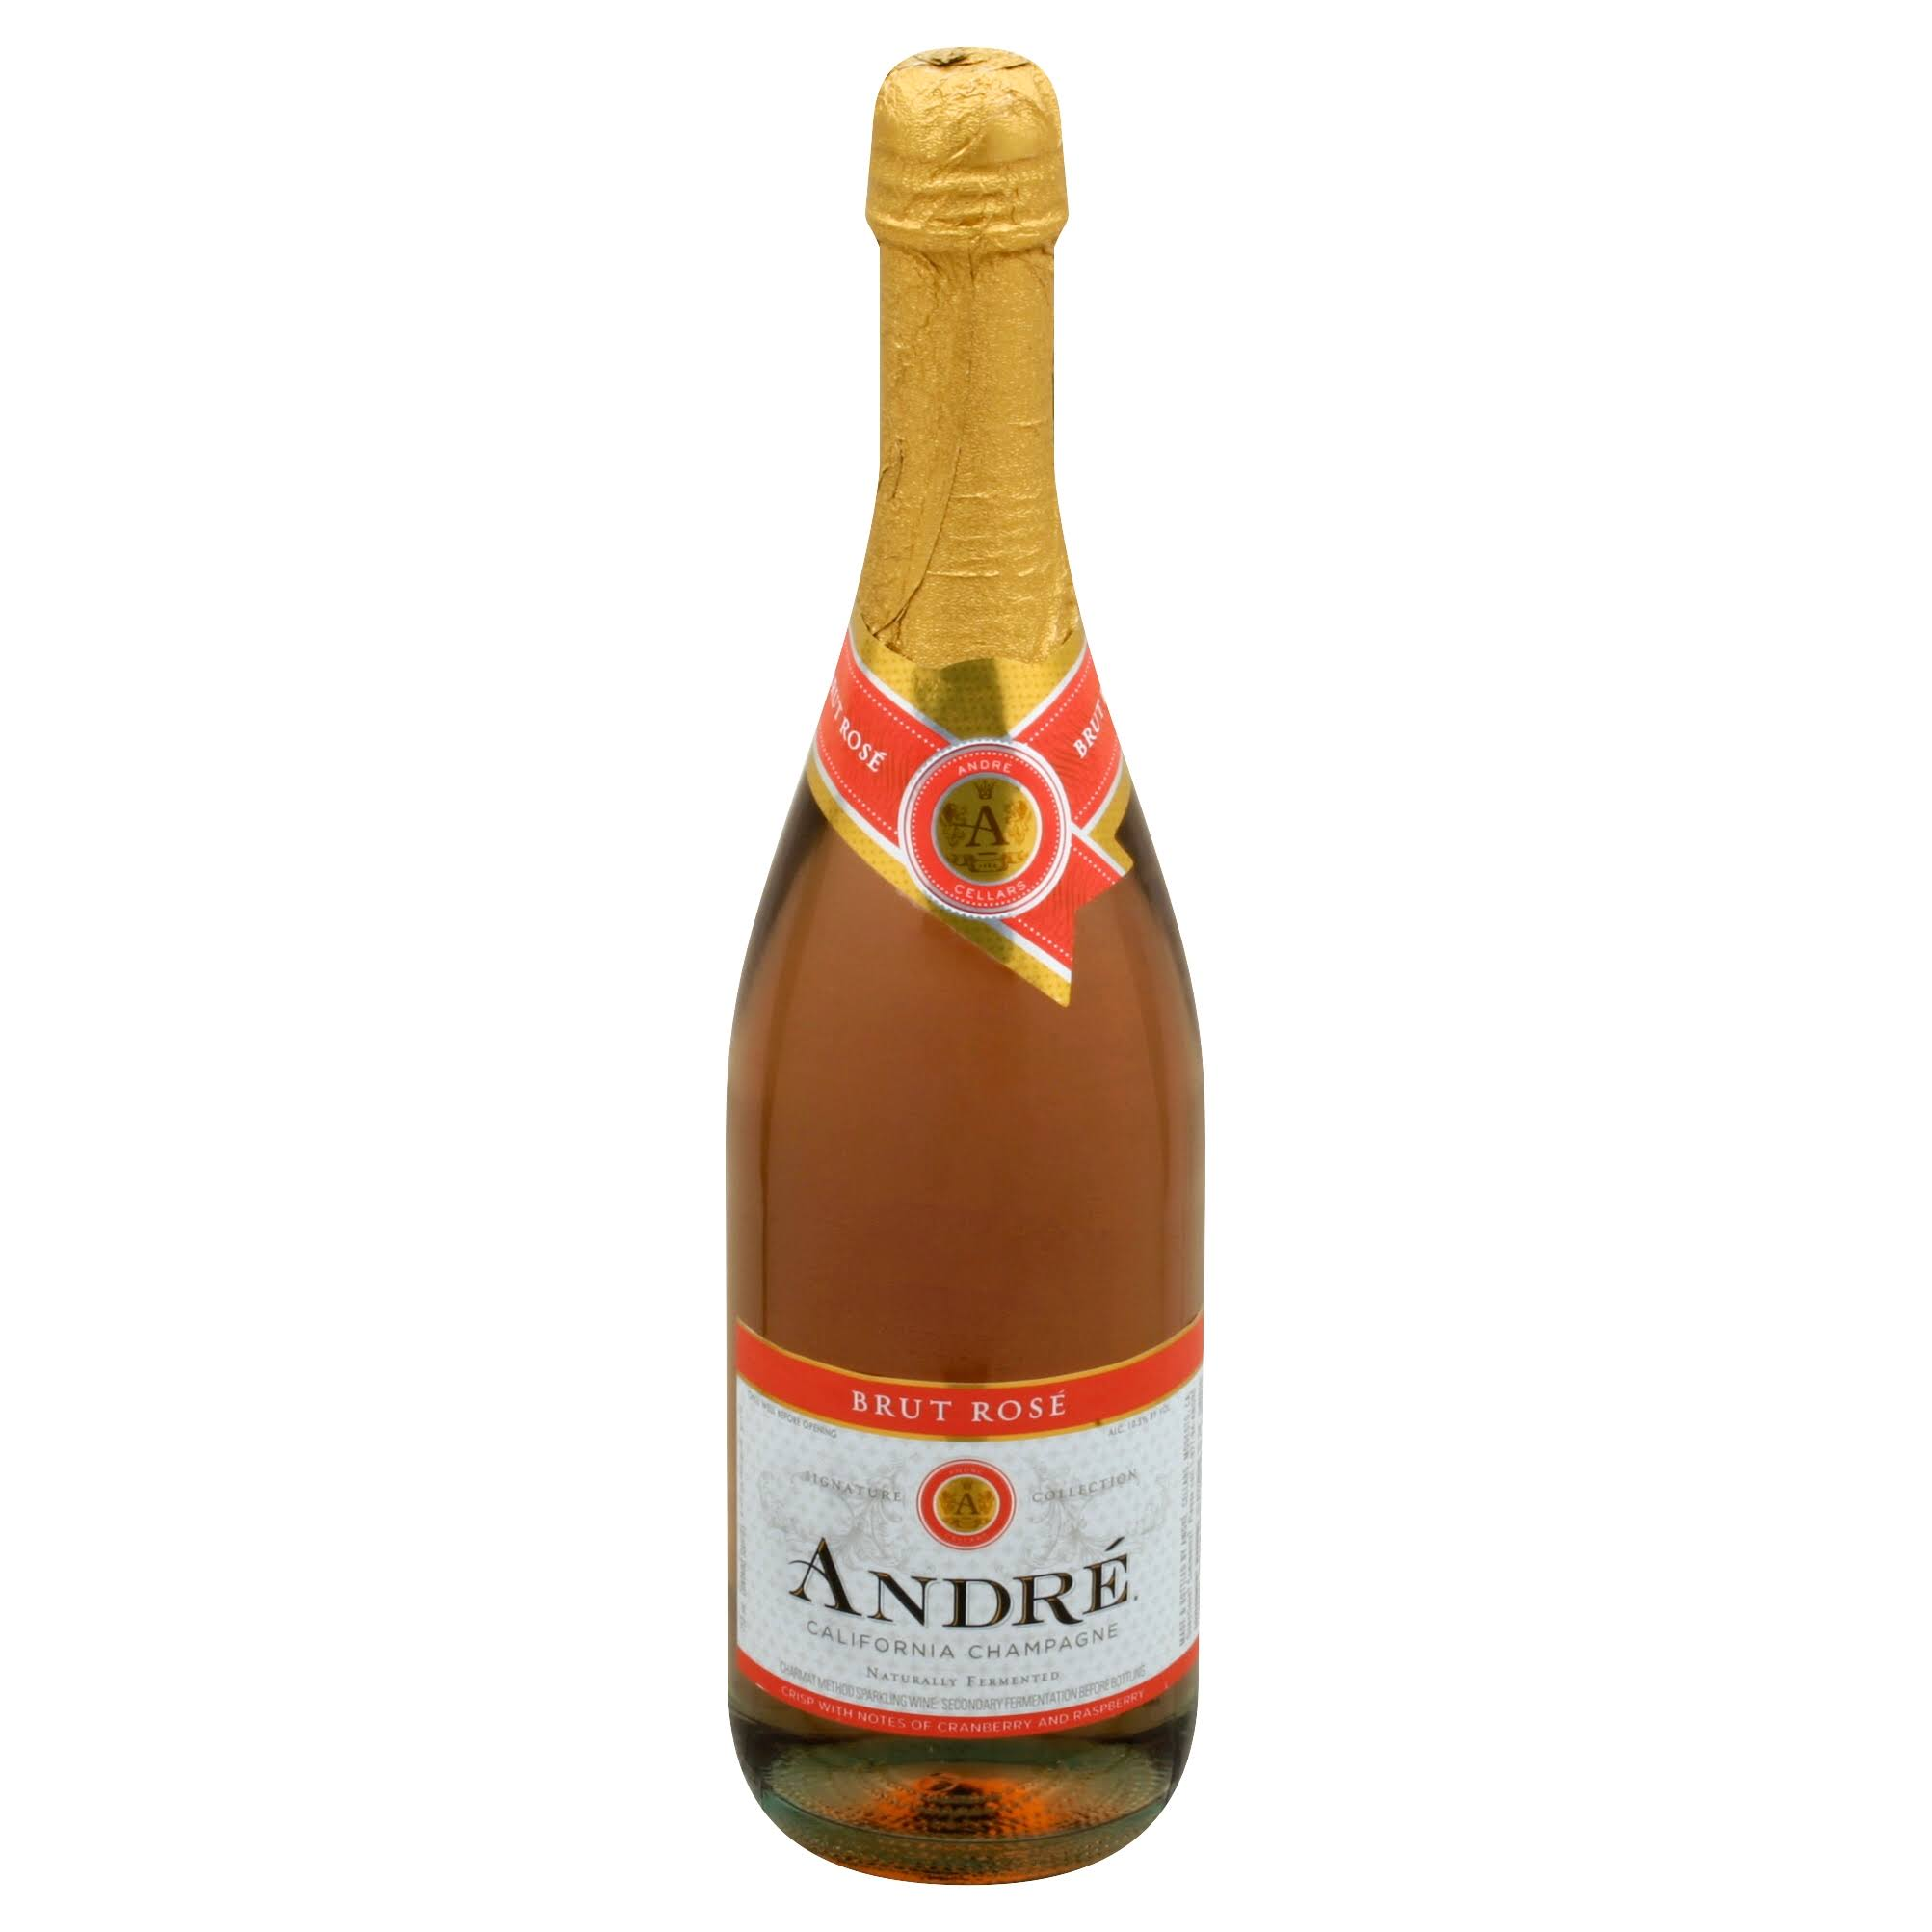 Andre Champagne, Brut Rose, California - 750 ml